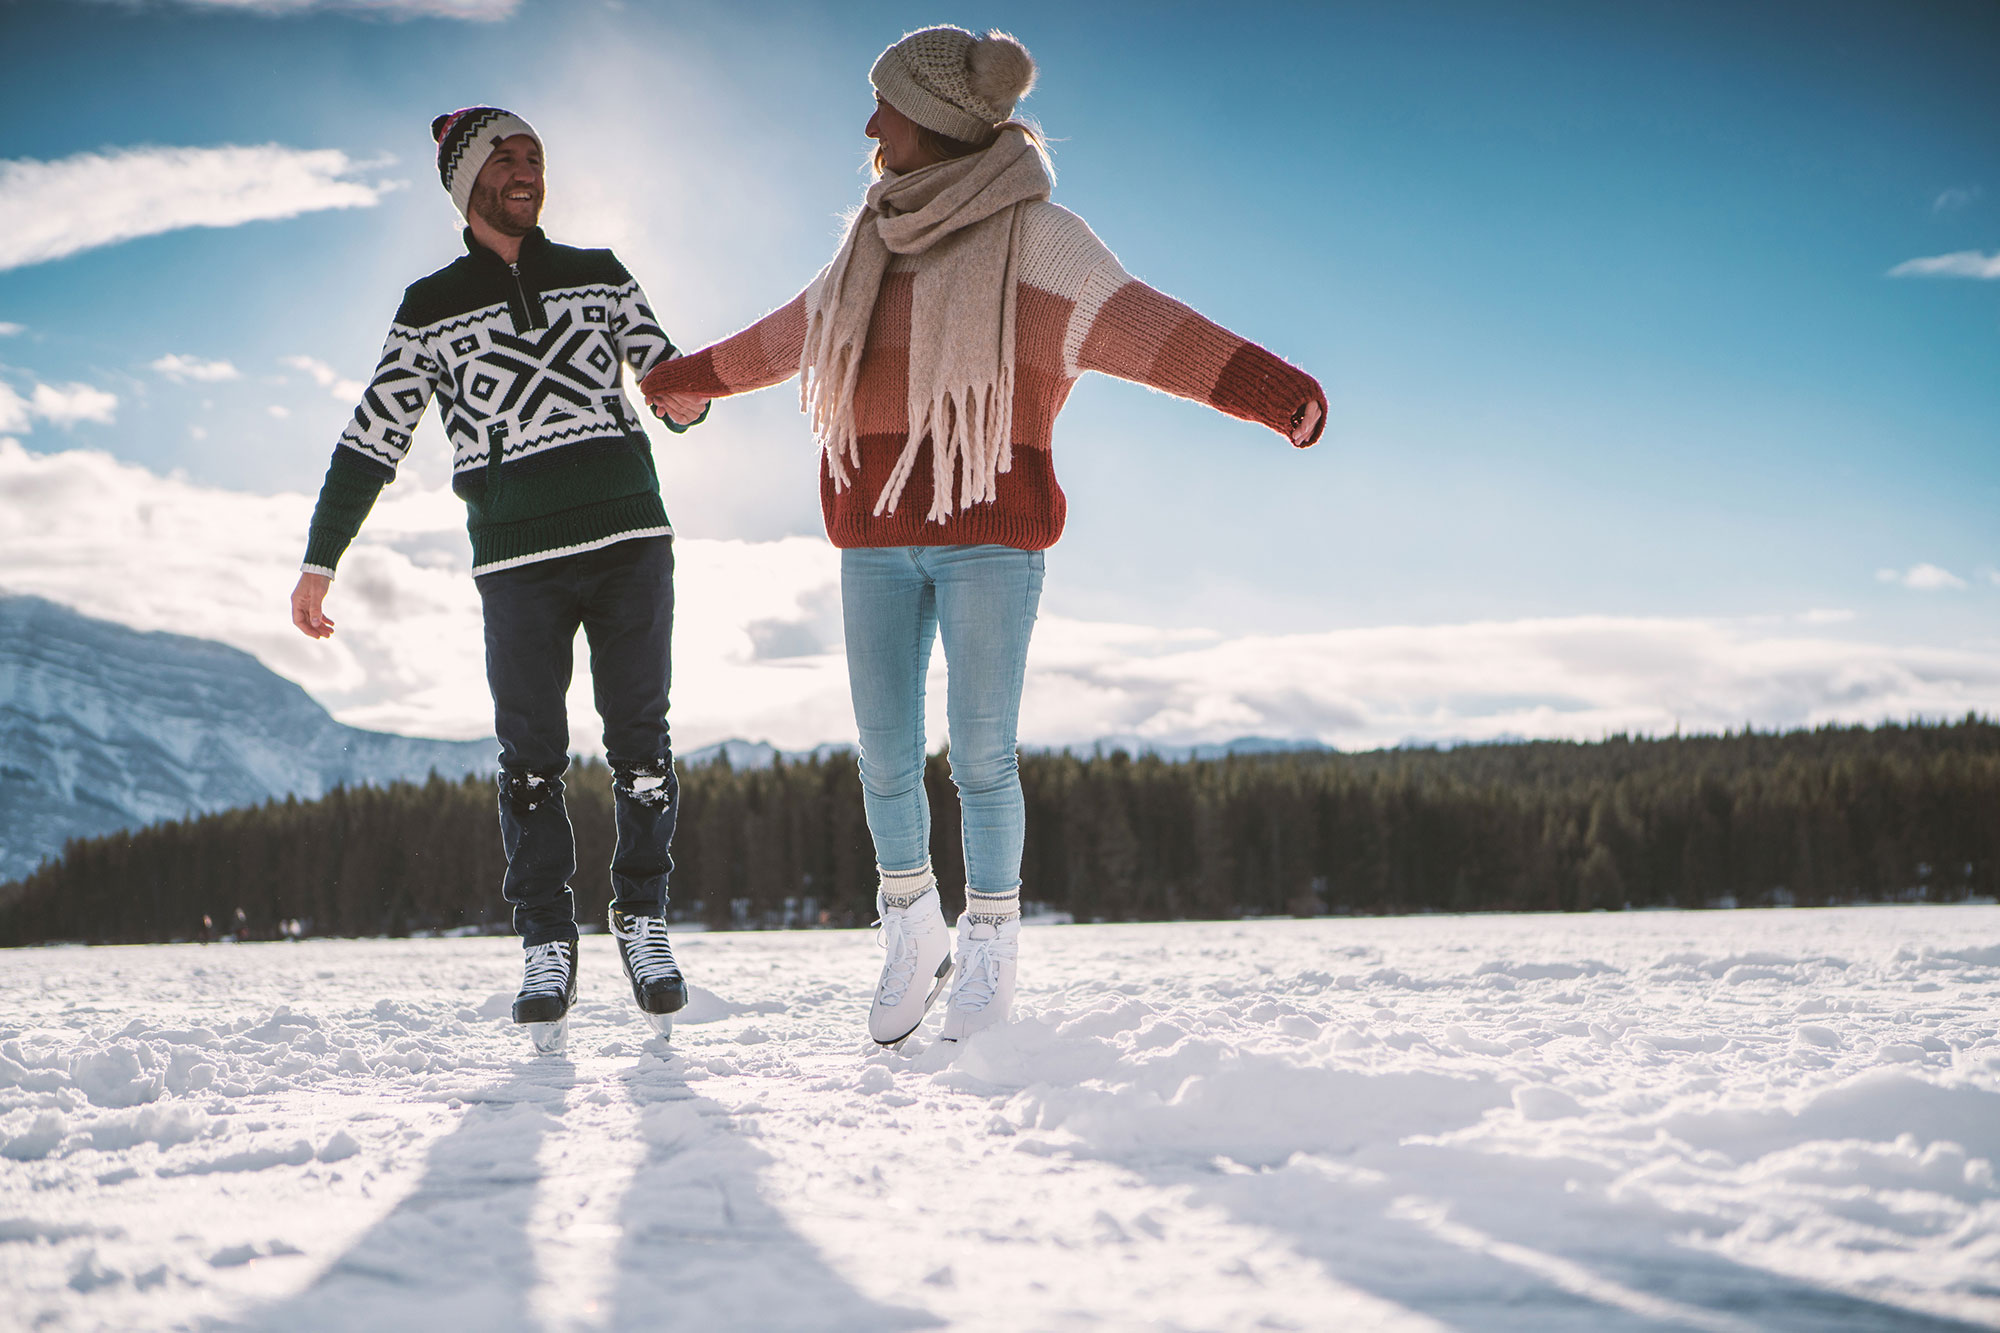 couple-skating-mountains-winter-things-to-do